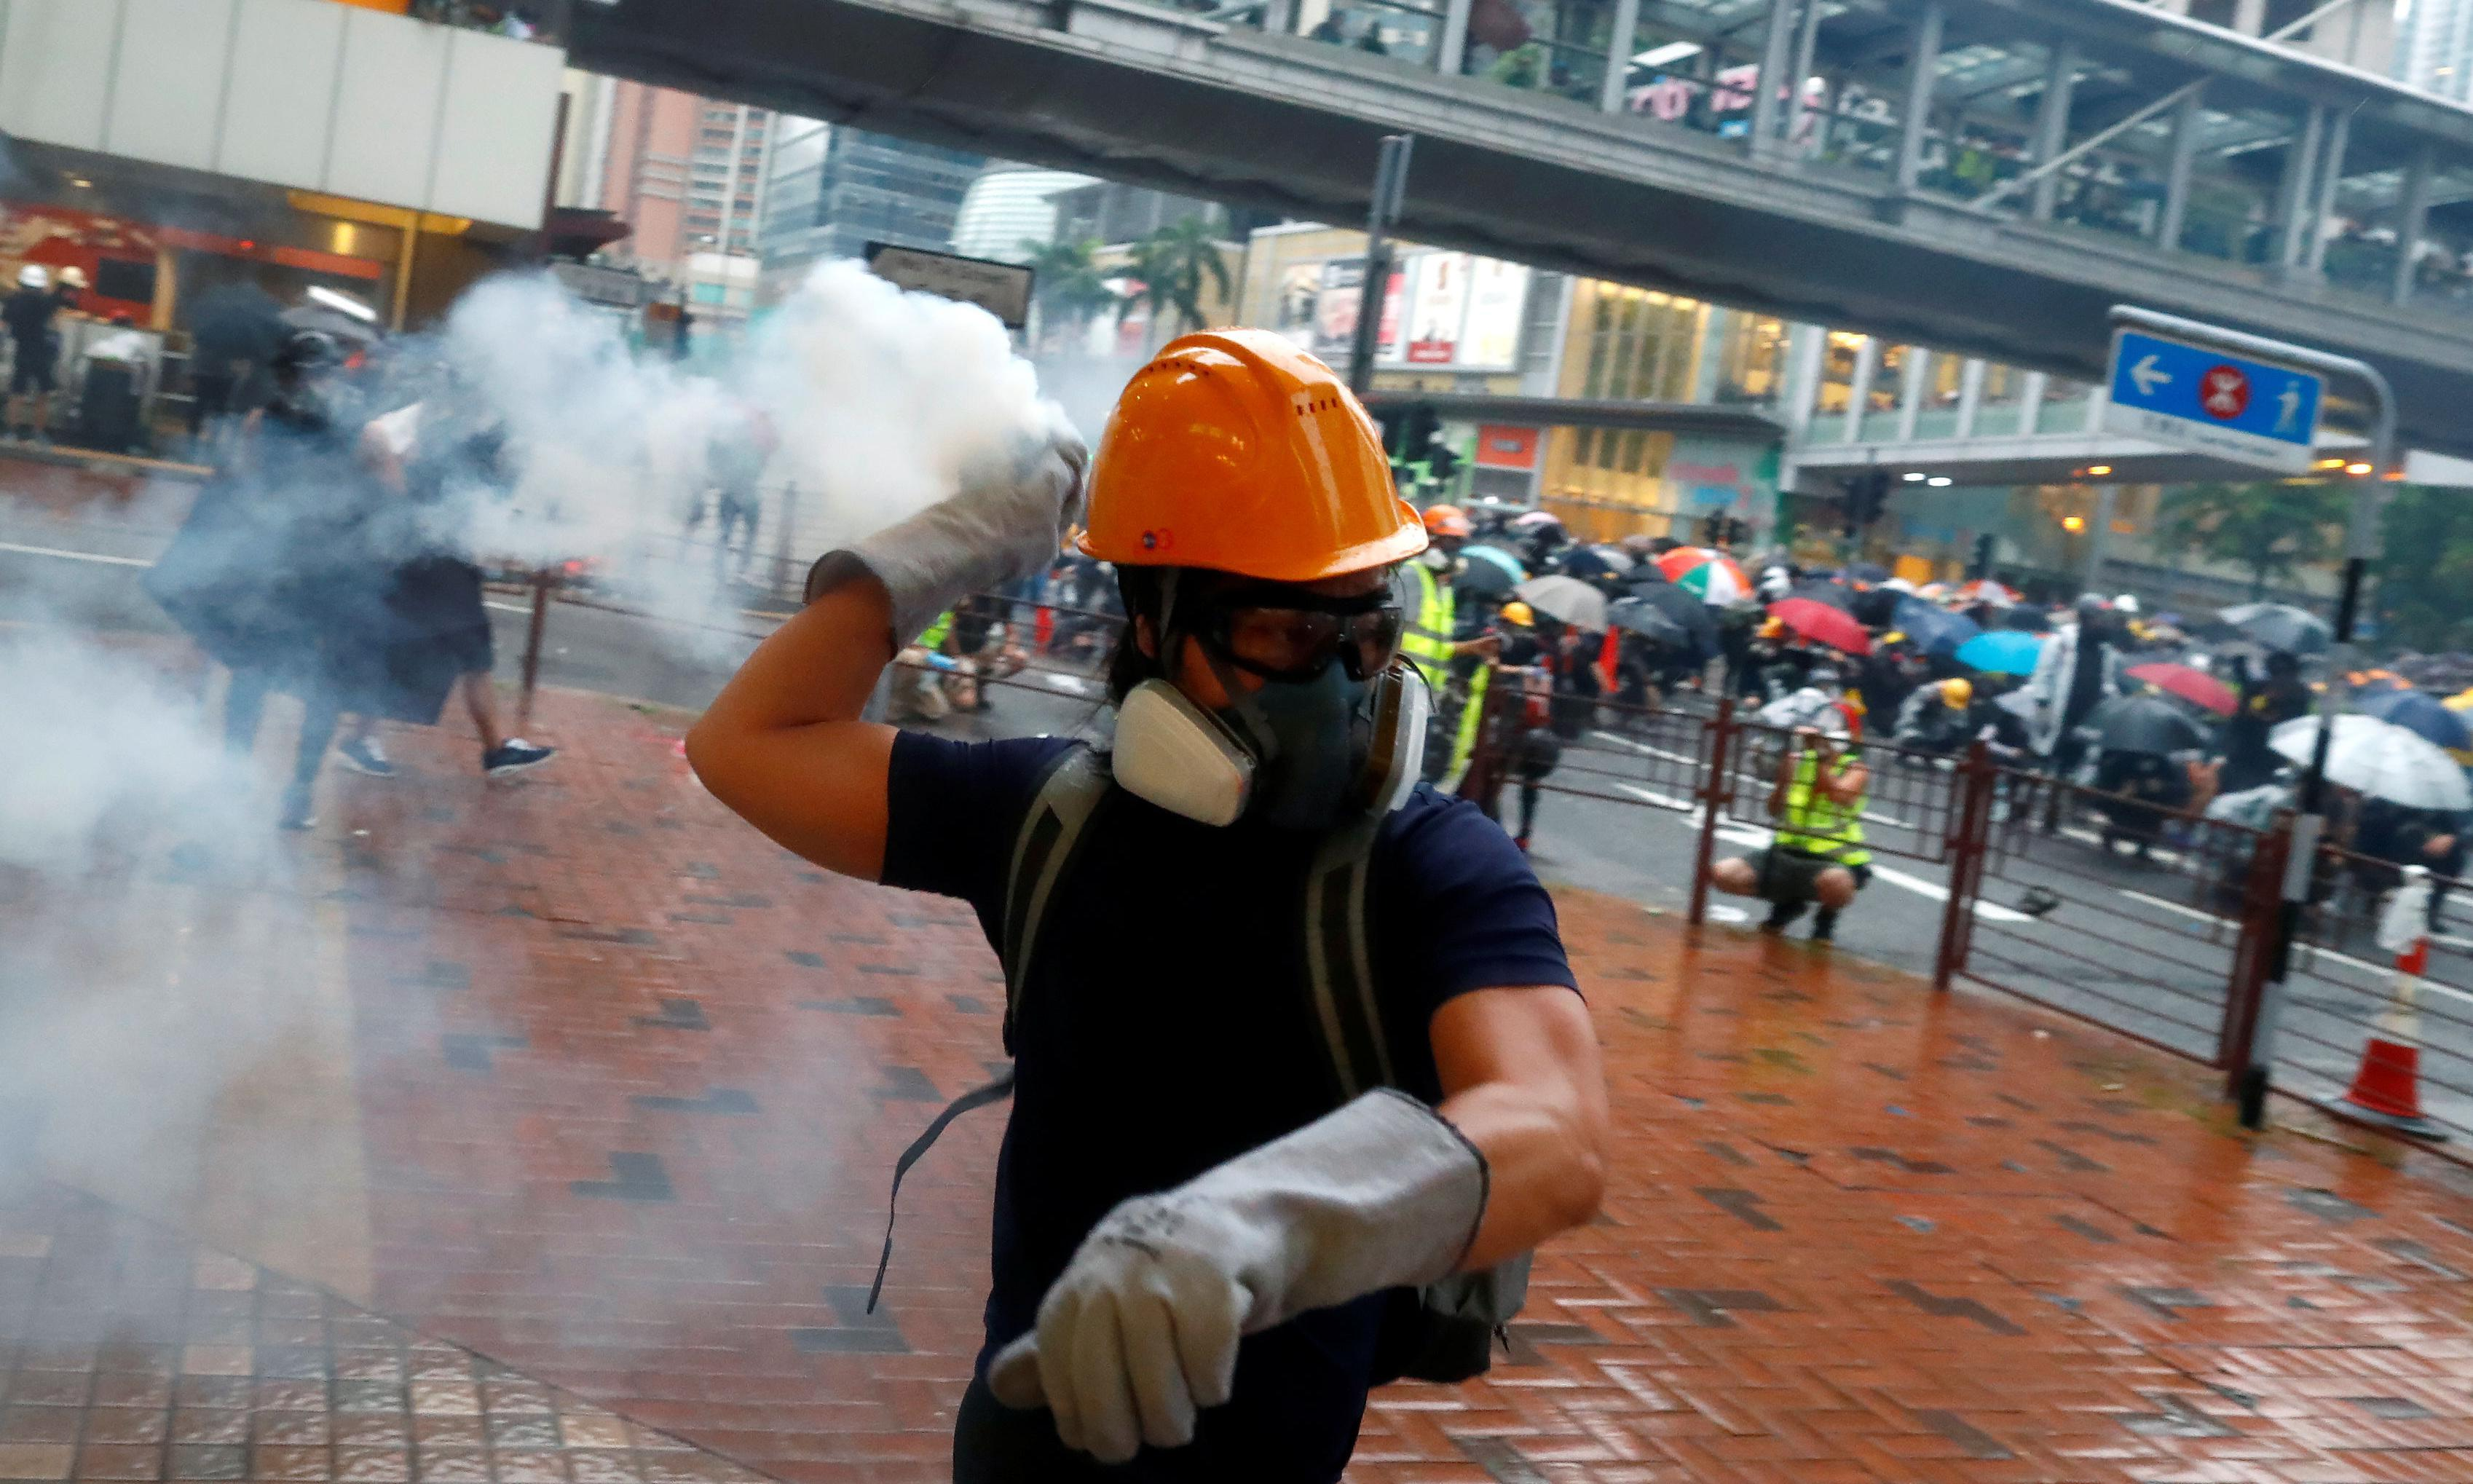 Hong Kong protests: police use water cannon on demonstrators